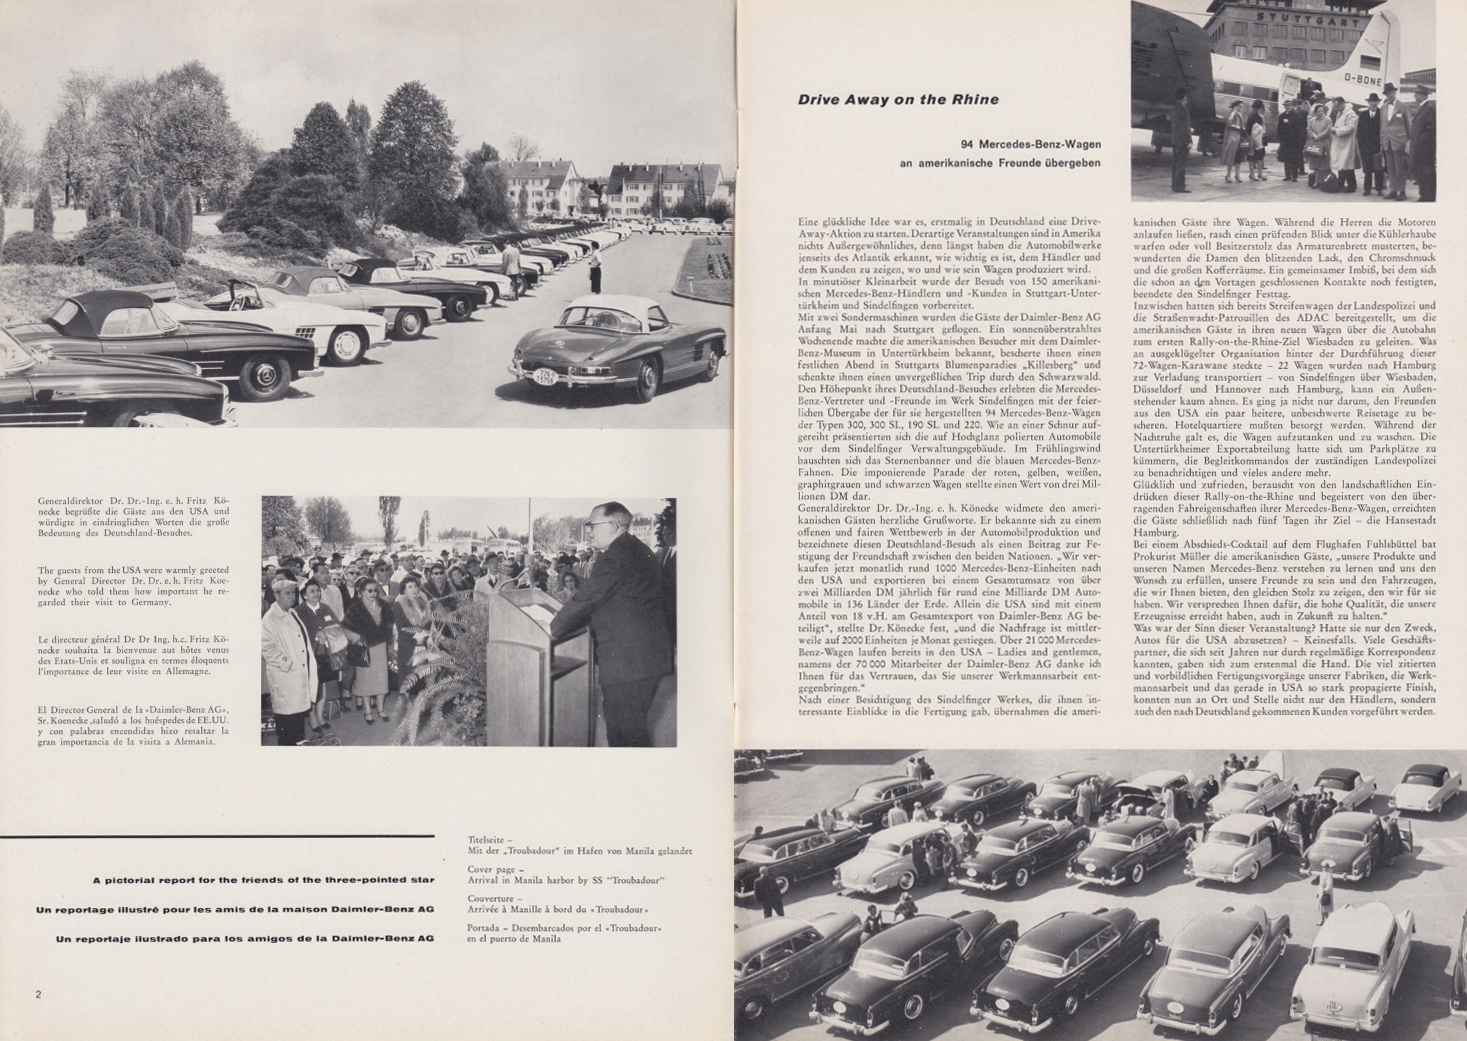 (REVISTA): Periódico In aller welt n.º 33 - Mercedes-Benz no mundo - 1959 - multilingue 002